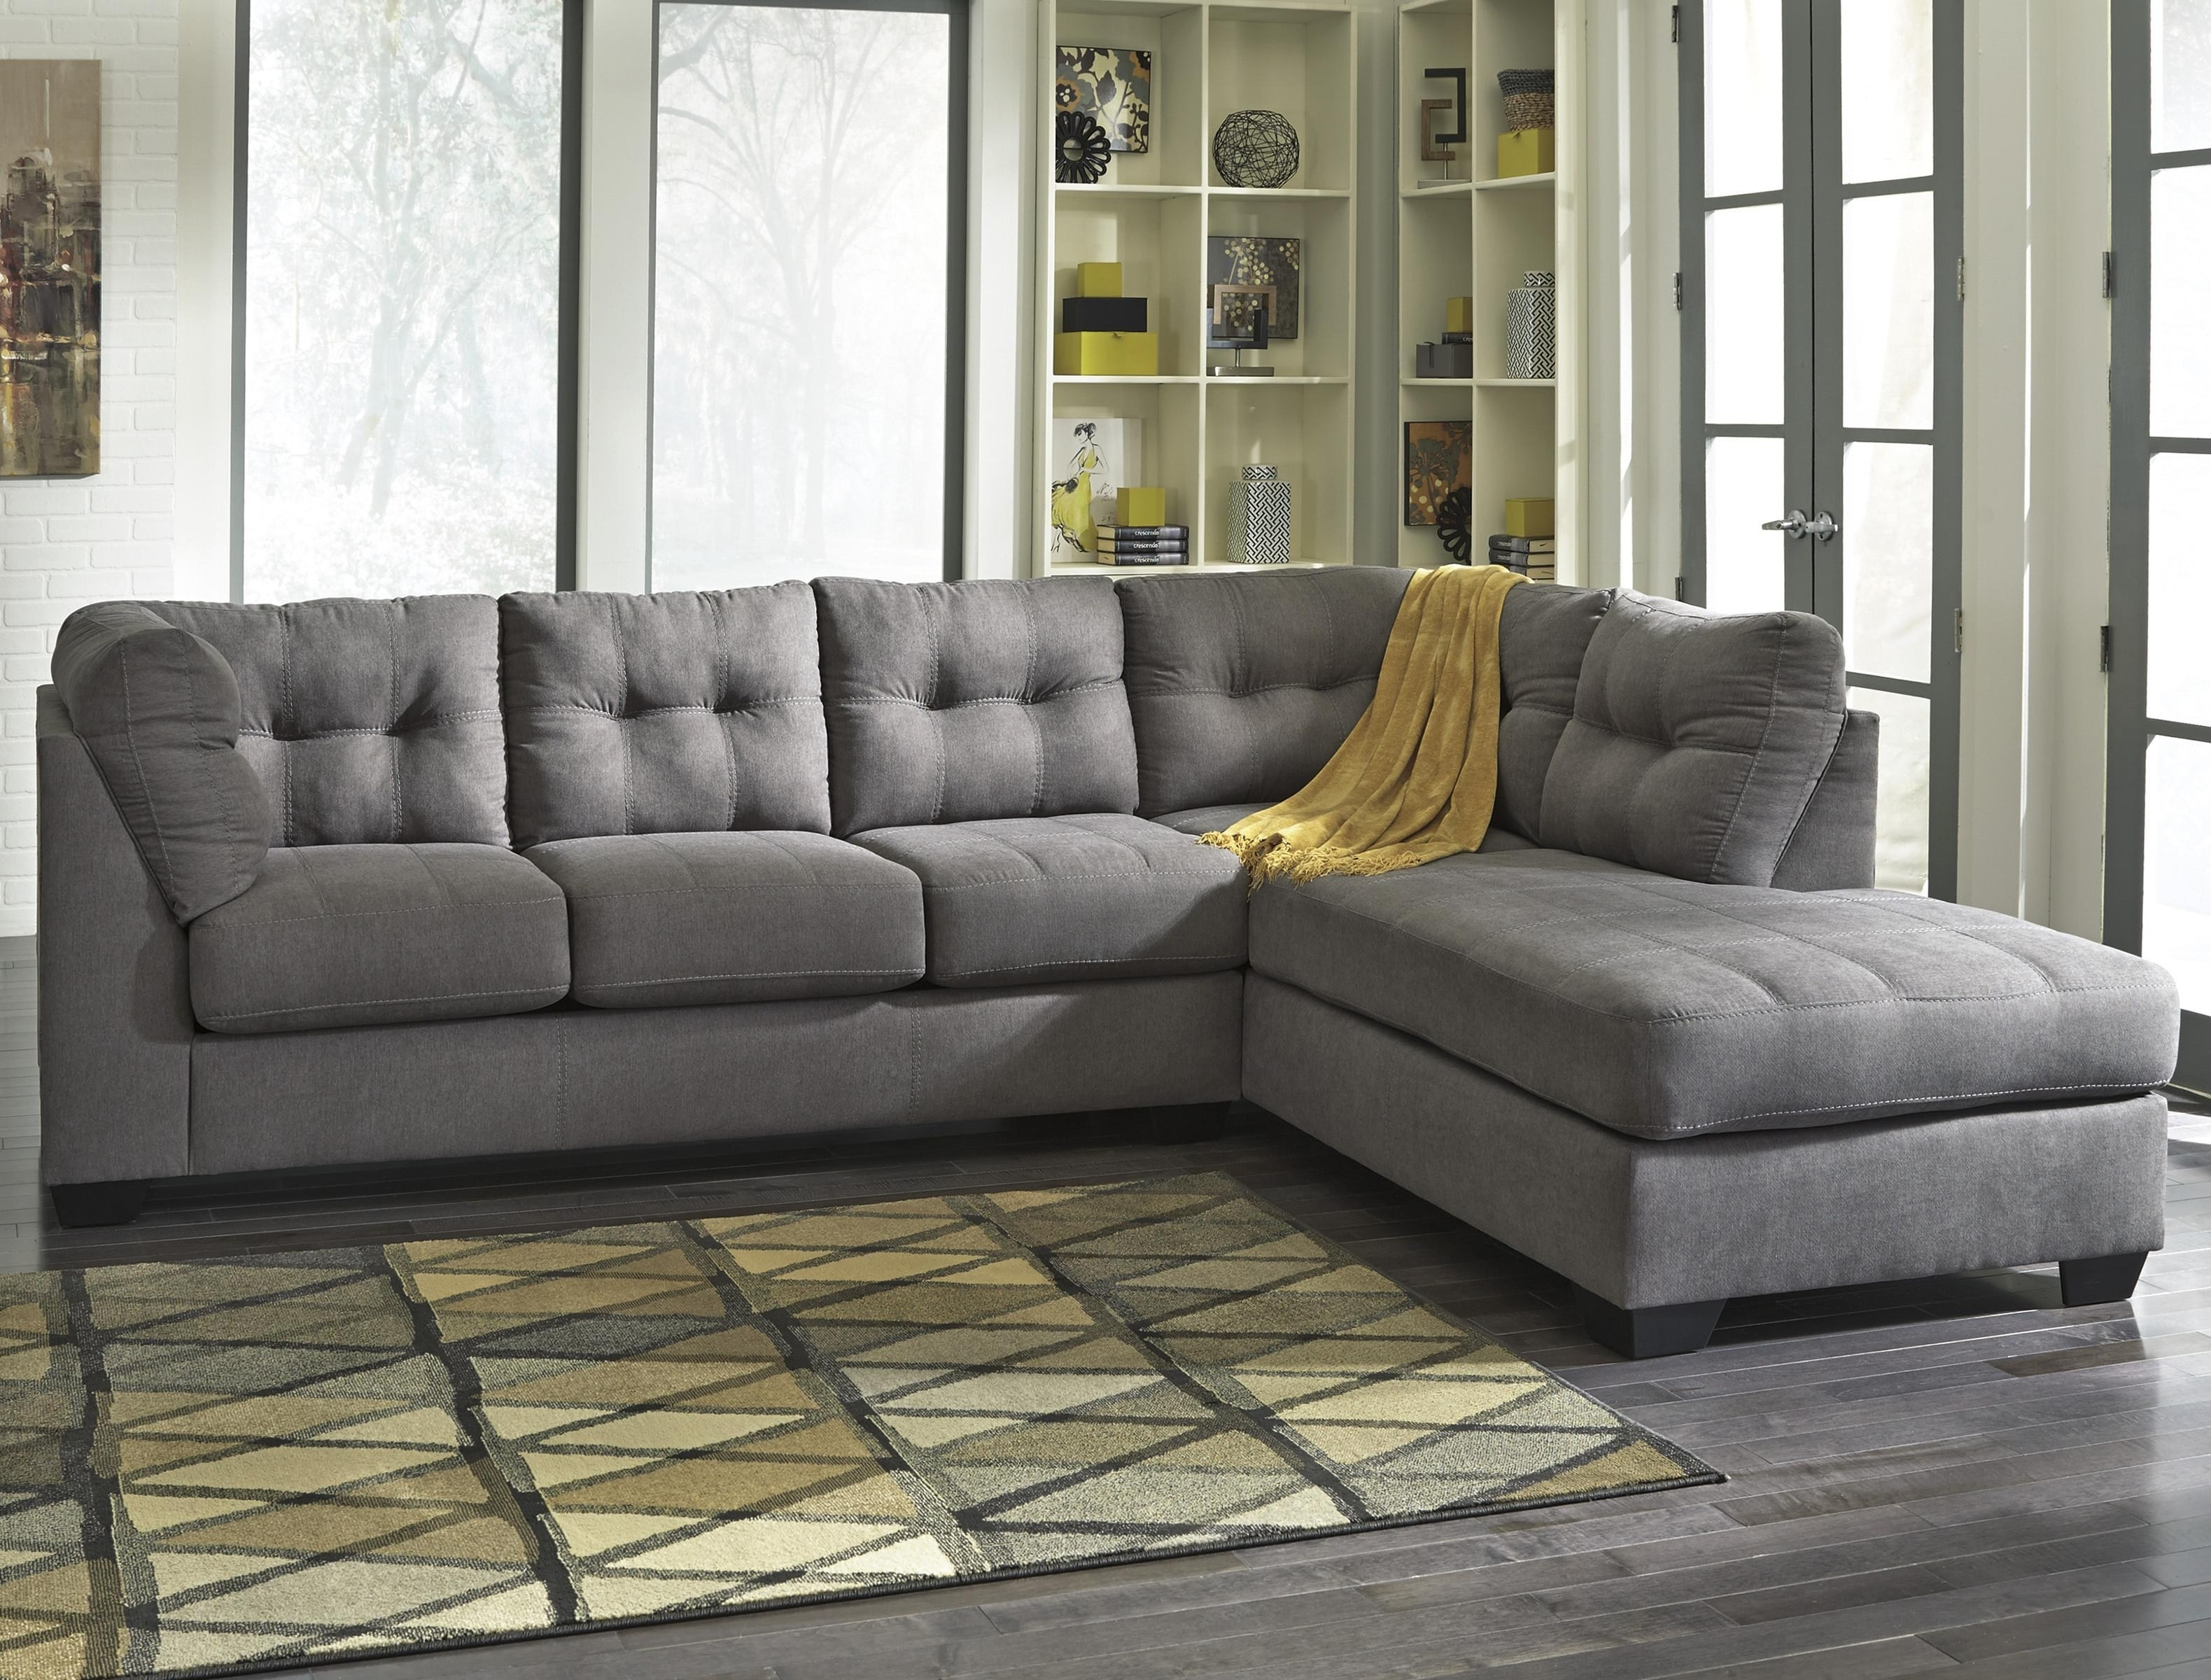 What To Know Before Buying A 3 Piece Sectional Sofa - Elites Home Decor pertaining to Kerri 2 Piece Sectionals With Raf Chaise (Image 30 of 30)